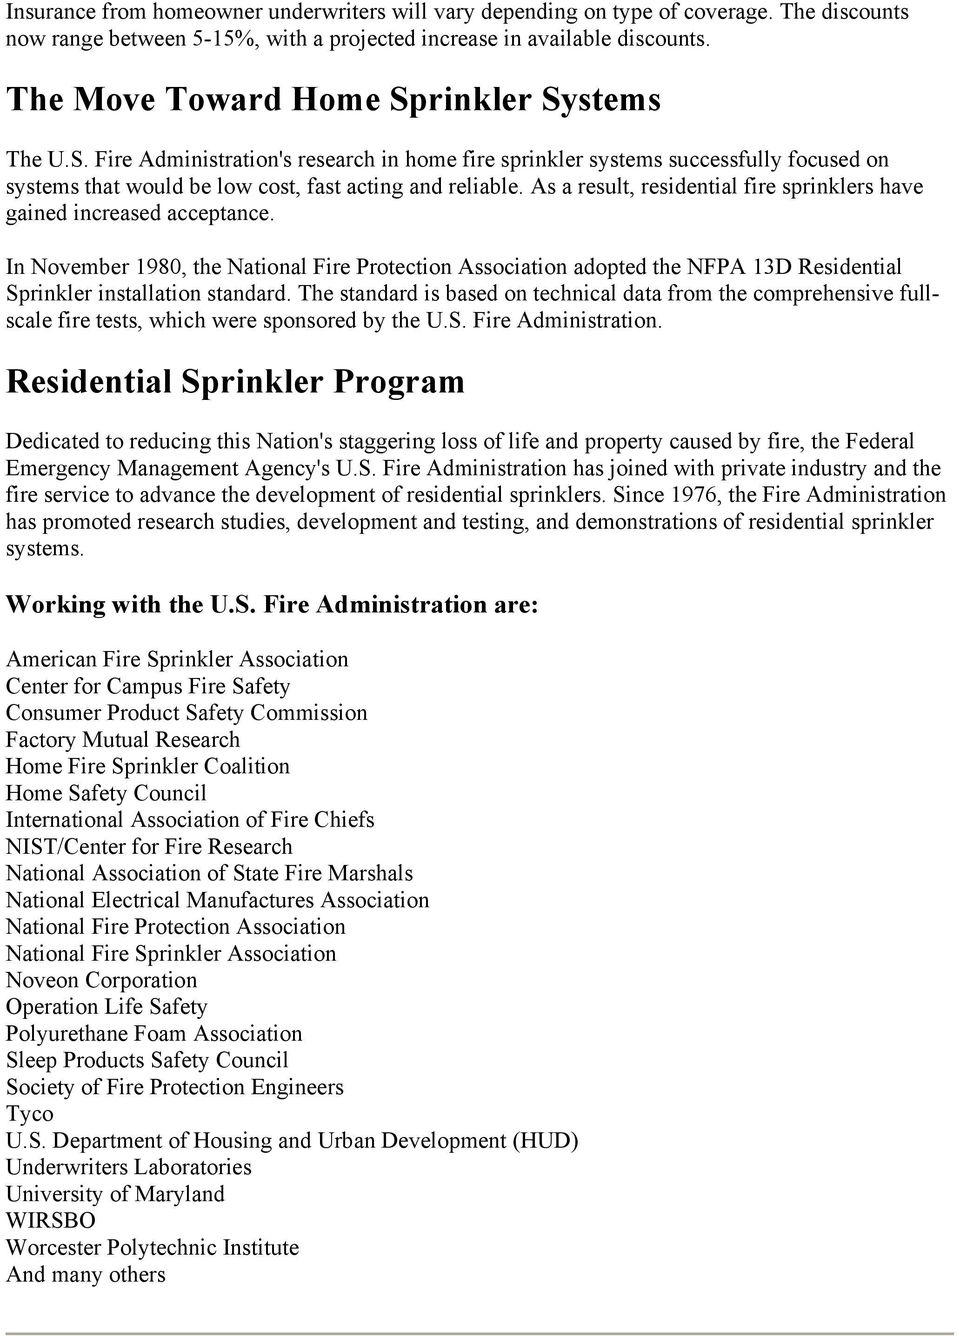 As a result, residential fire sprinklers have gained increased acceptance. In November 1980, the National Fire Protection Association adopted the NFPA 13D Residential Sprinkler installation standard.